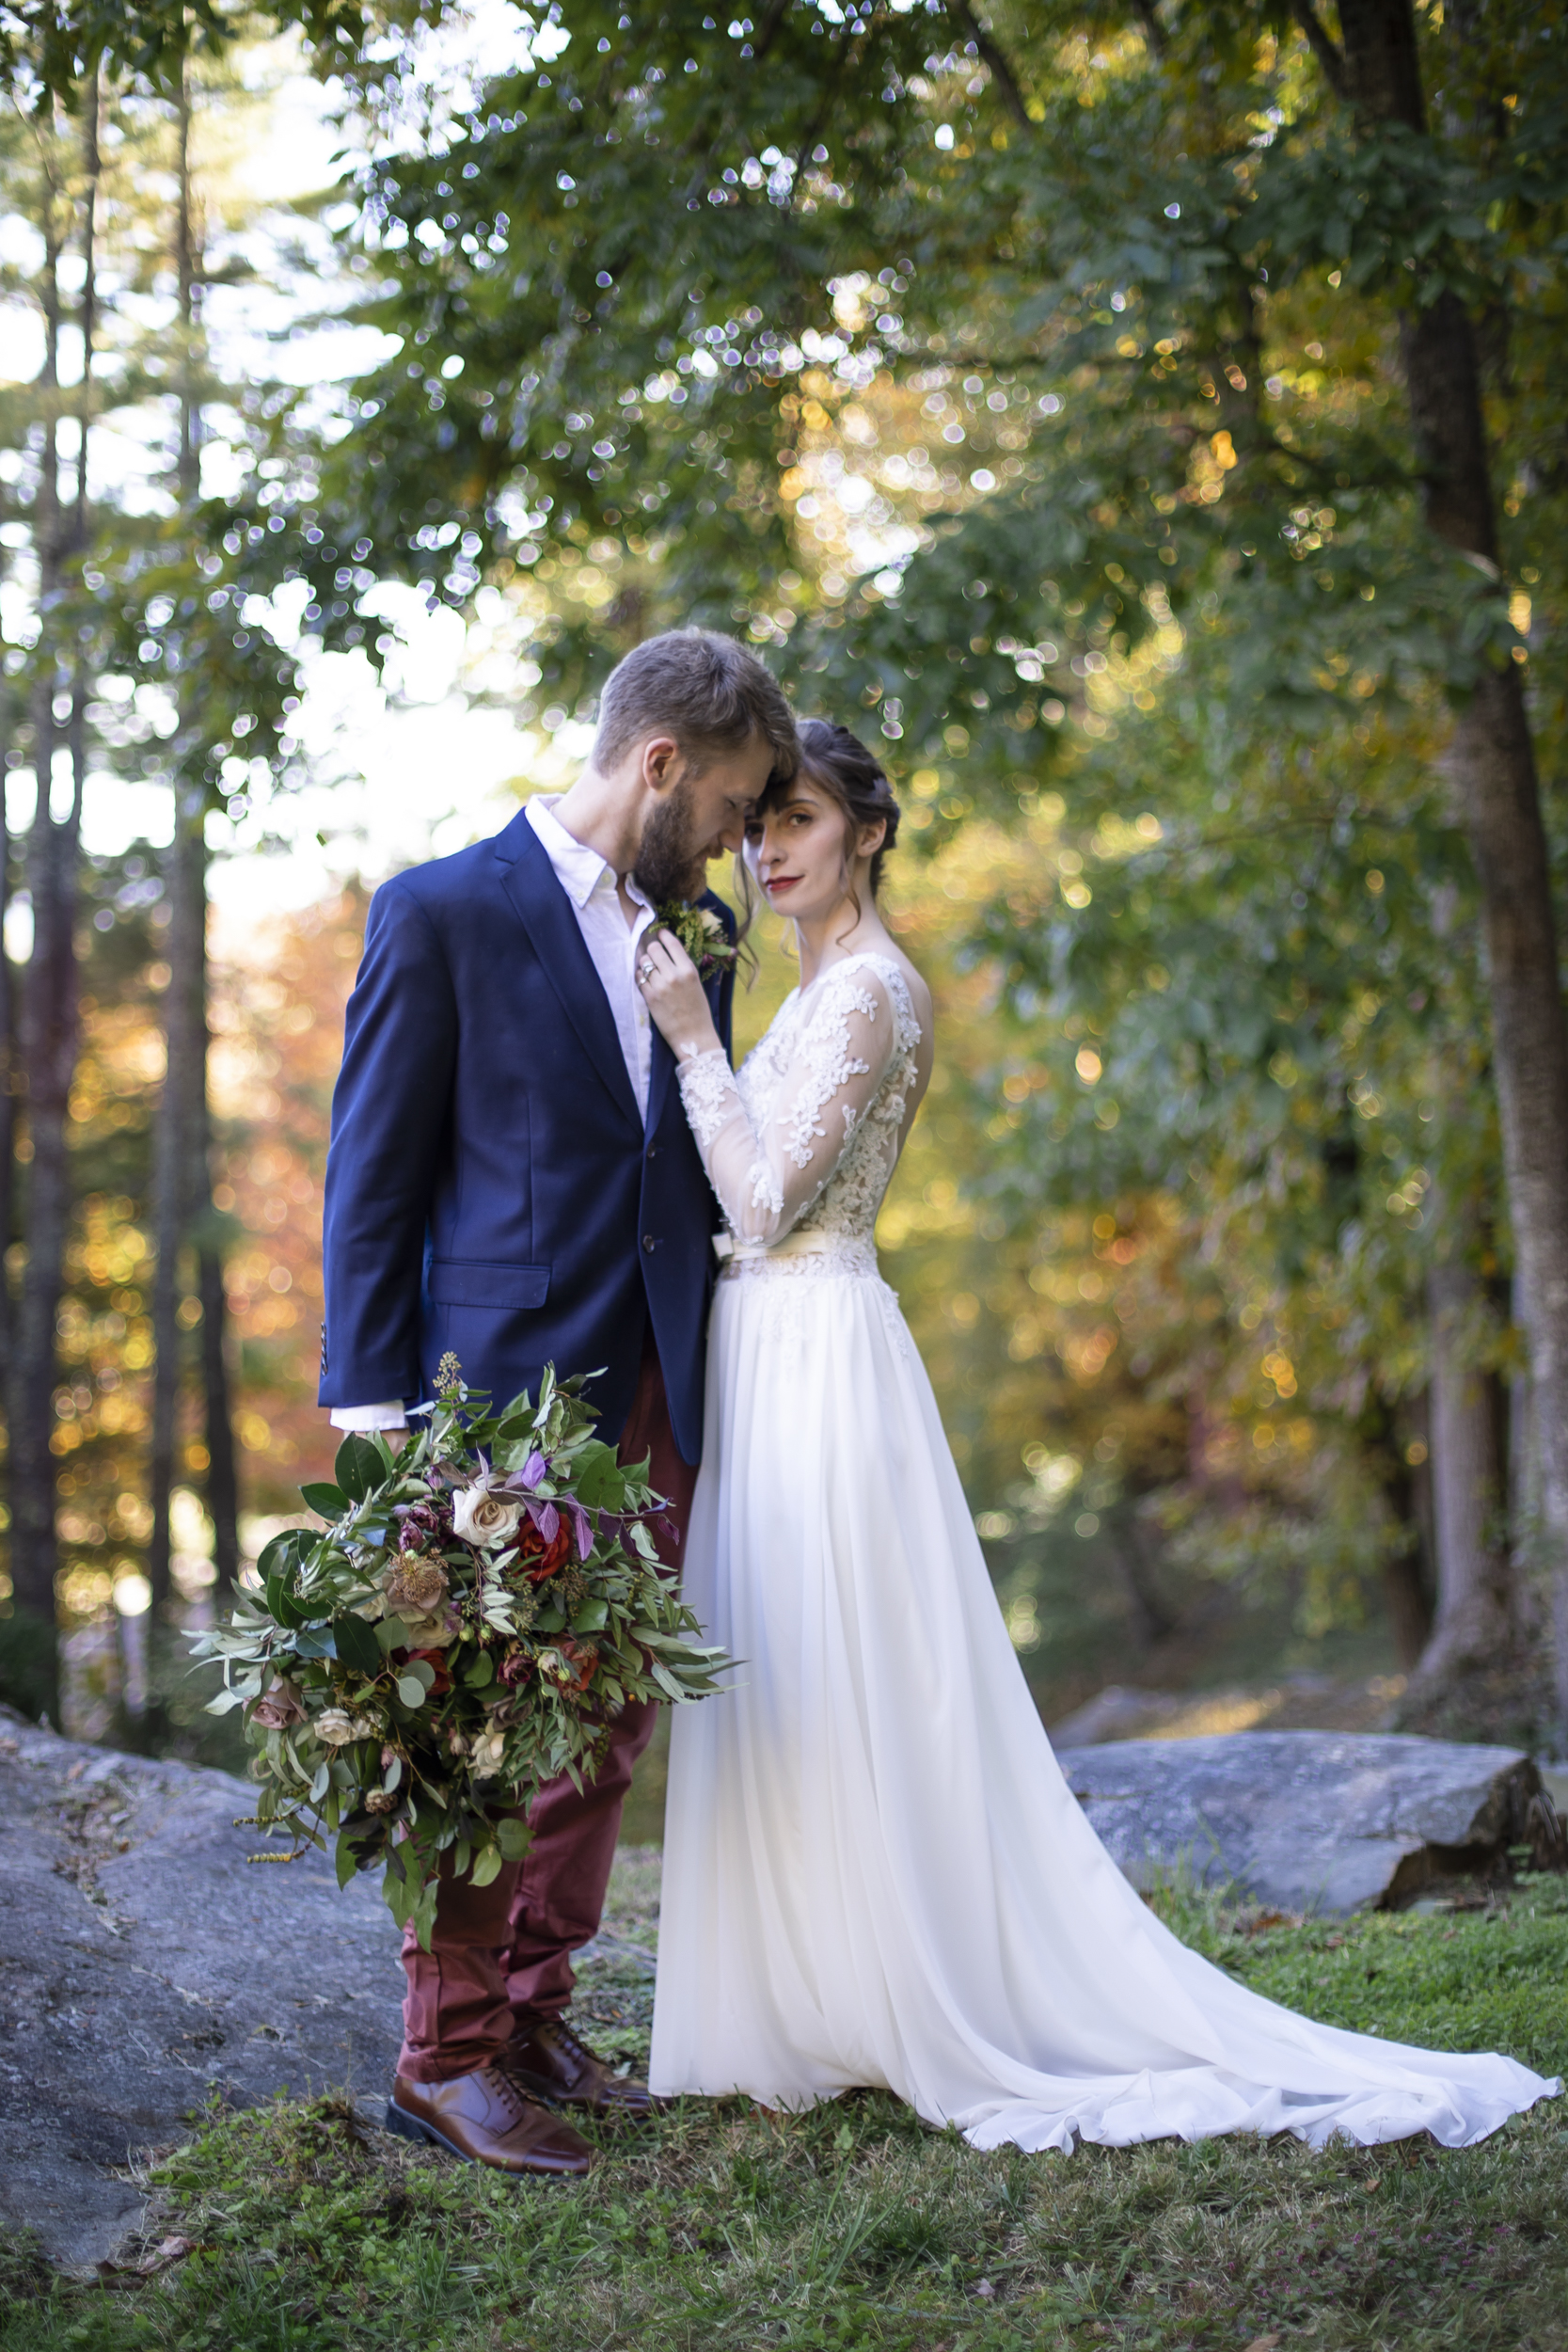 Laurel Falls Wedding October 2018_Allison and Josh__Lola Salon_Flora_Photo by Studio Misha Photography-35.jpg